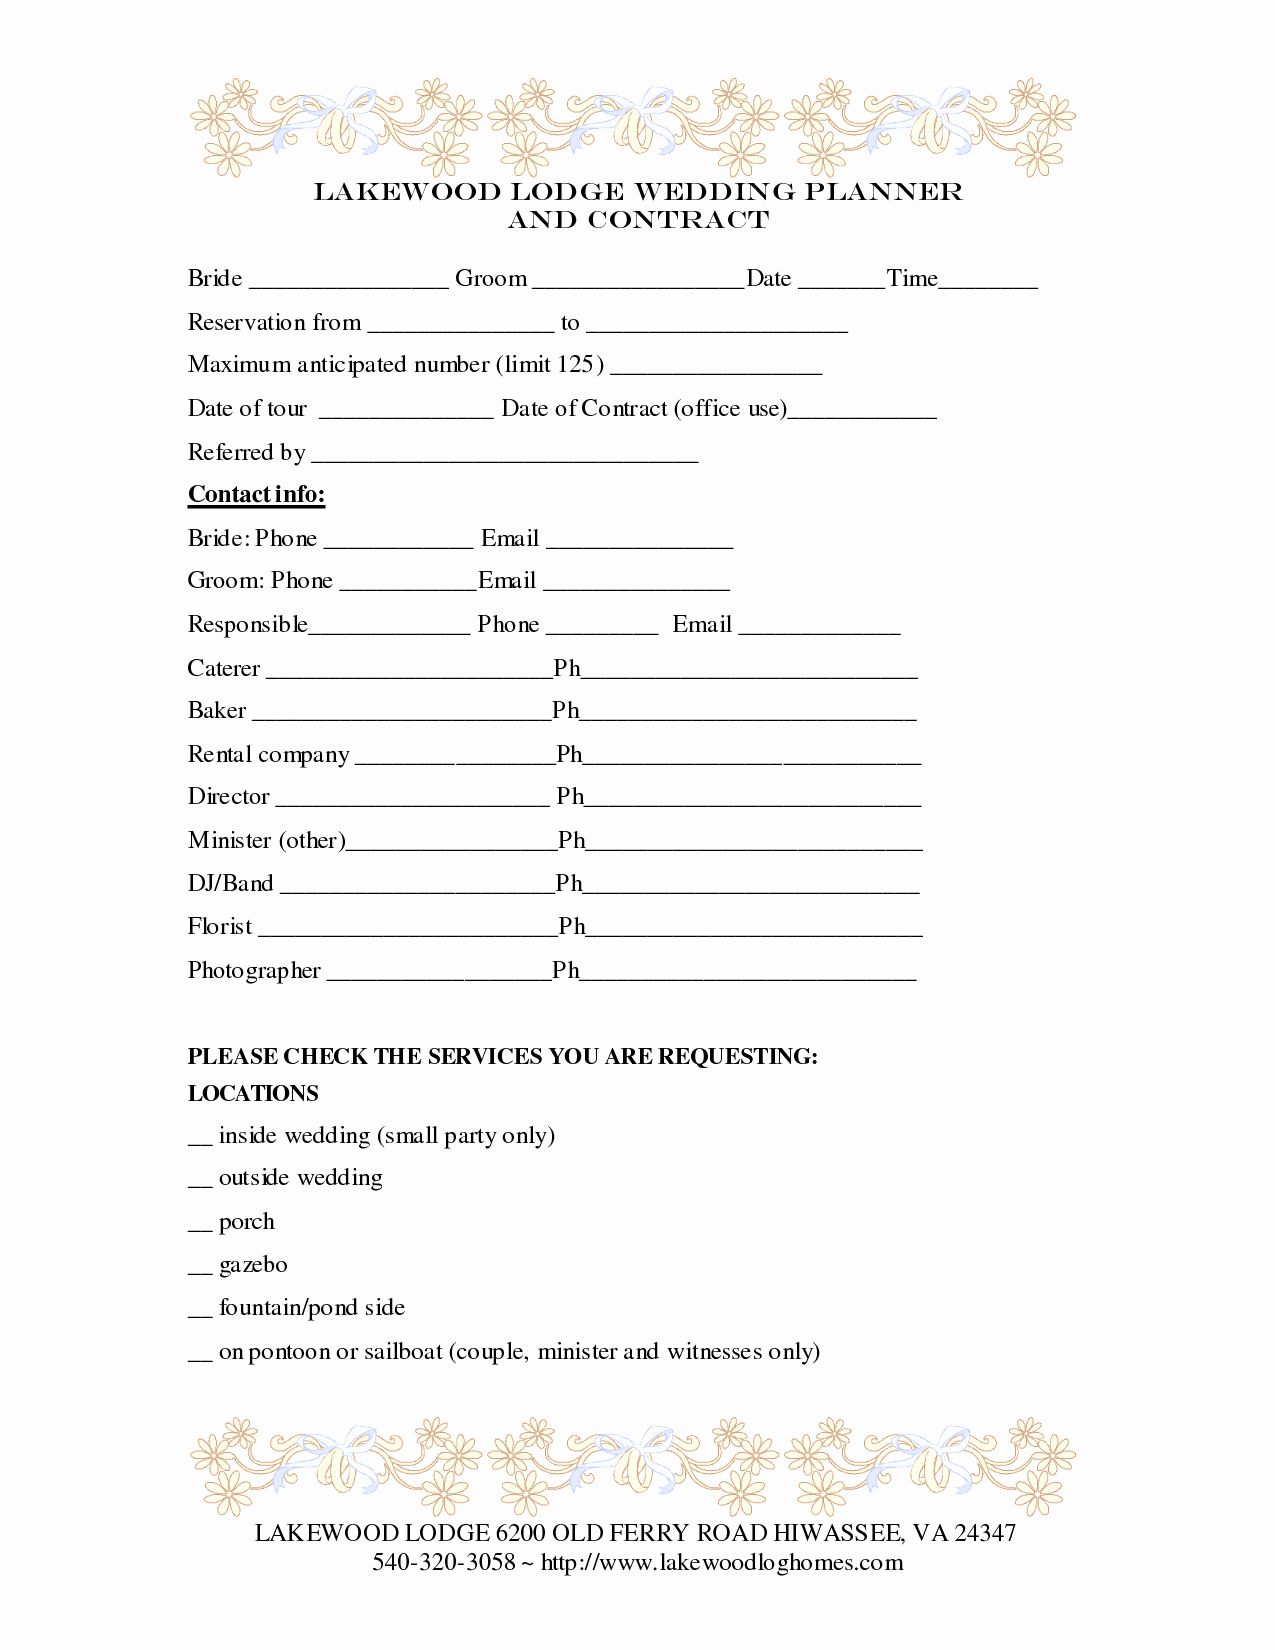 Party Planner Contract Template New Wedding Planner